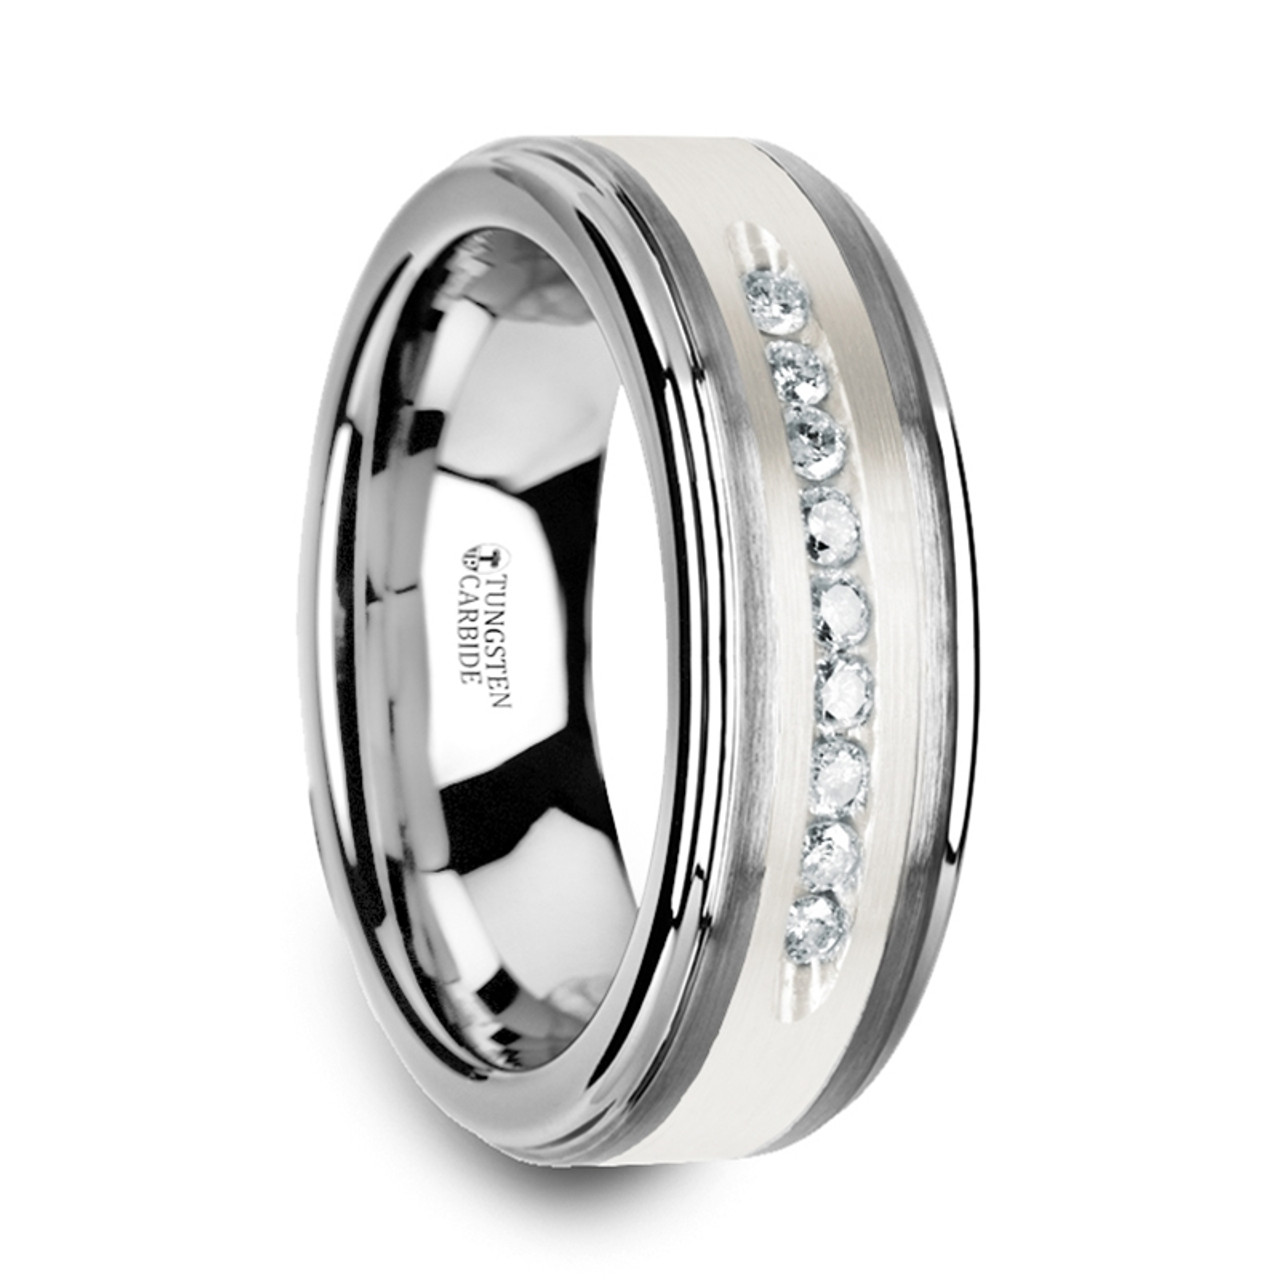 14 CWT DIAMOND ELEGANT MENS WEDDING BANDS TUNGSTEN Z218C MWB